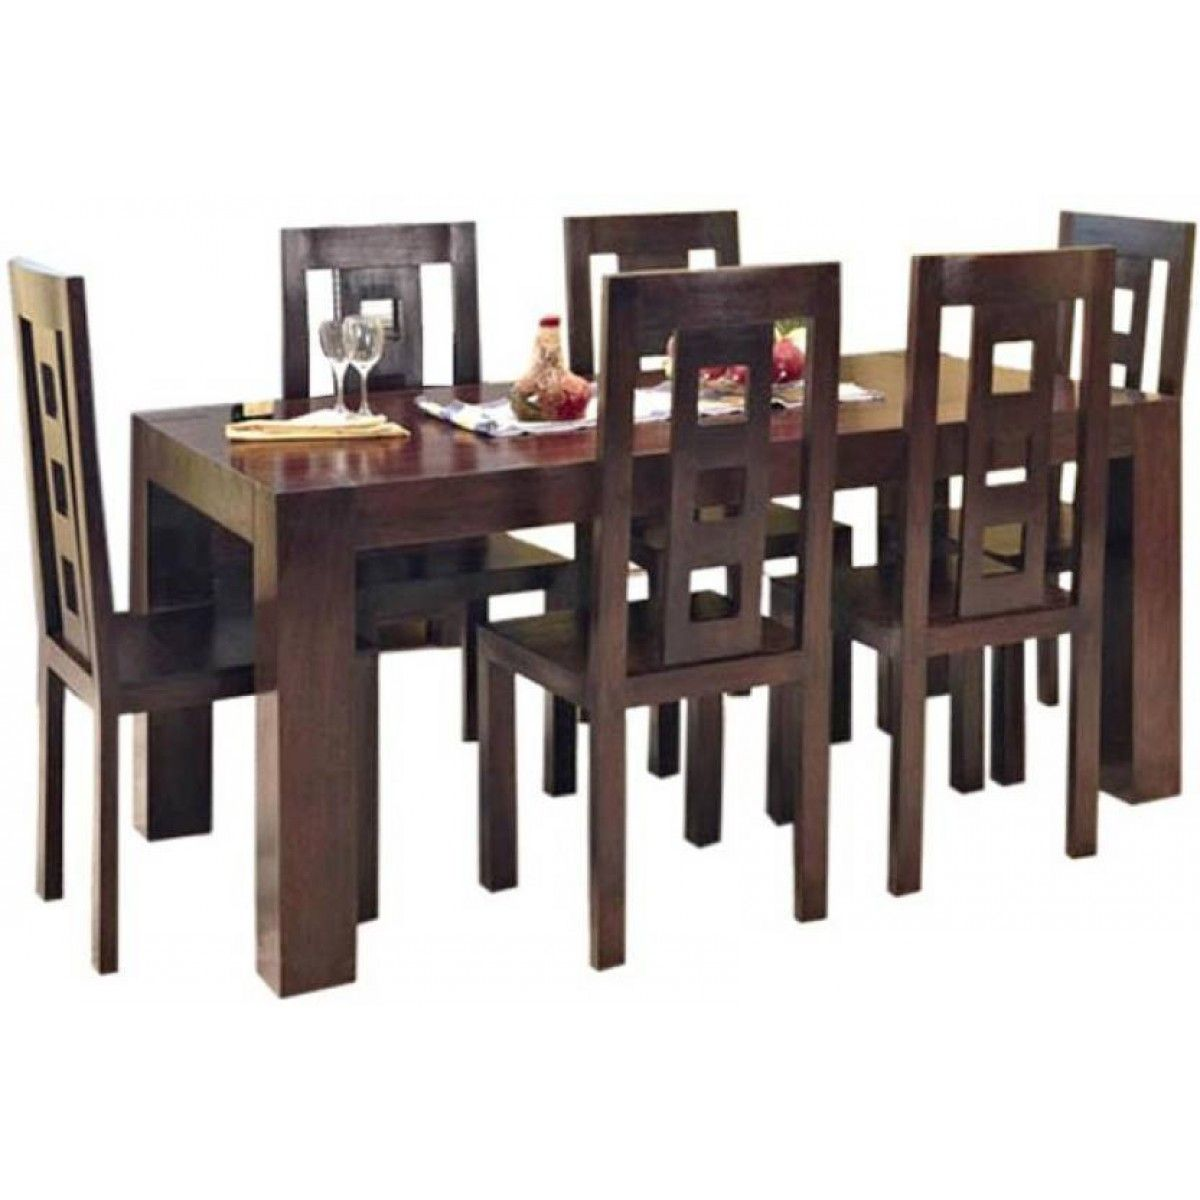 Six Seater Dining Table Online Walnut Brown Color Finishing Buy Online This Di Wooden Dining Table Designs Dining Table Design Modern 6 Seater Dining Table